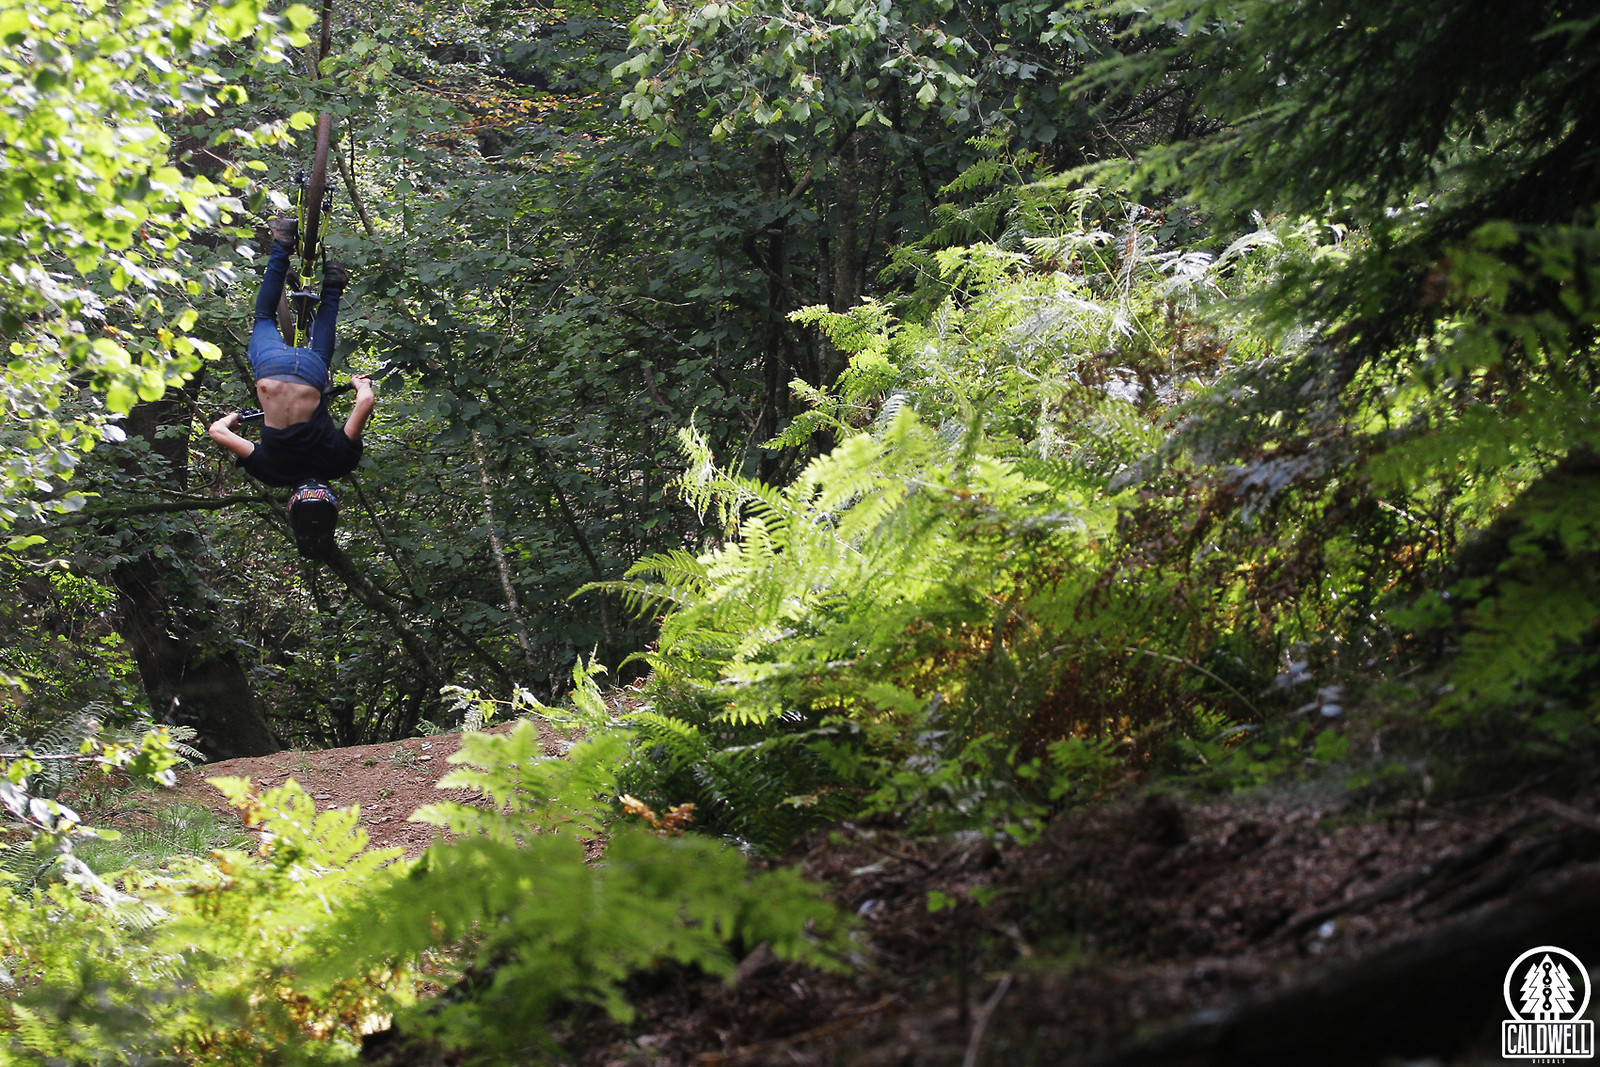 Spotting the landing in amongst the ferns - CaldwellVisuals - Mountain Biking Pictures - Vital MTB